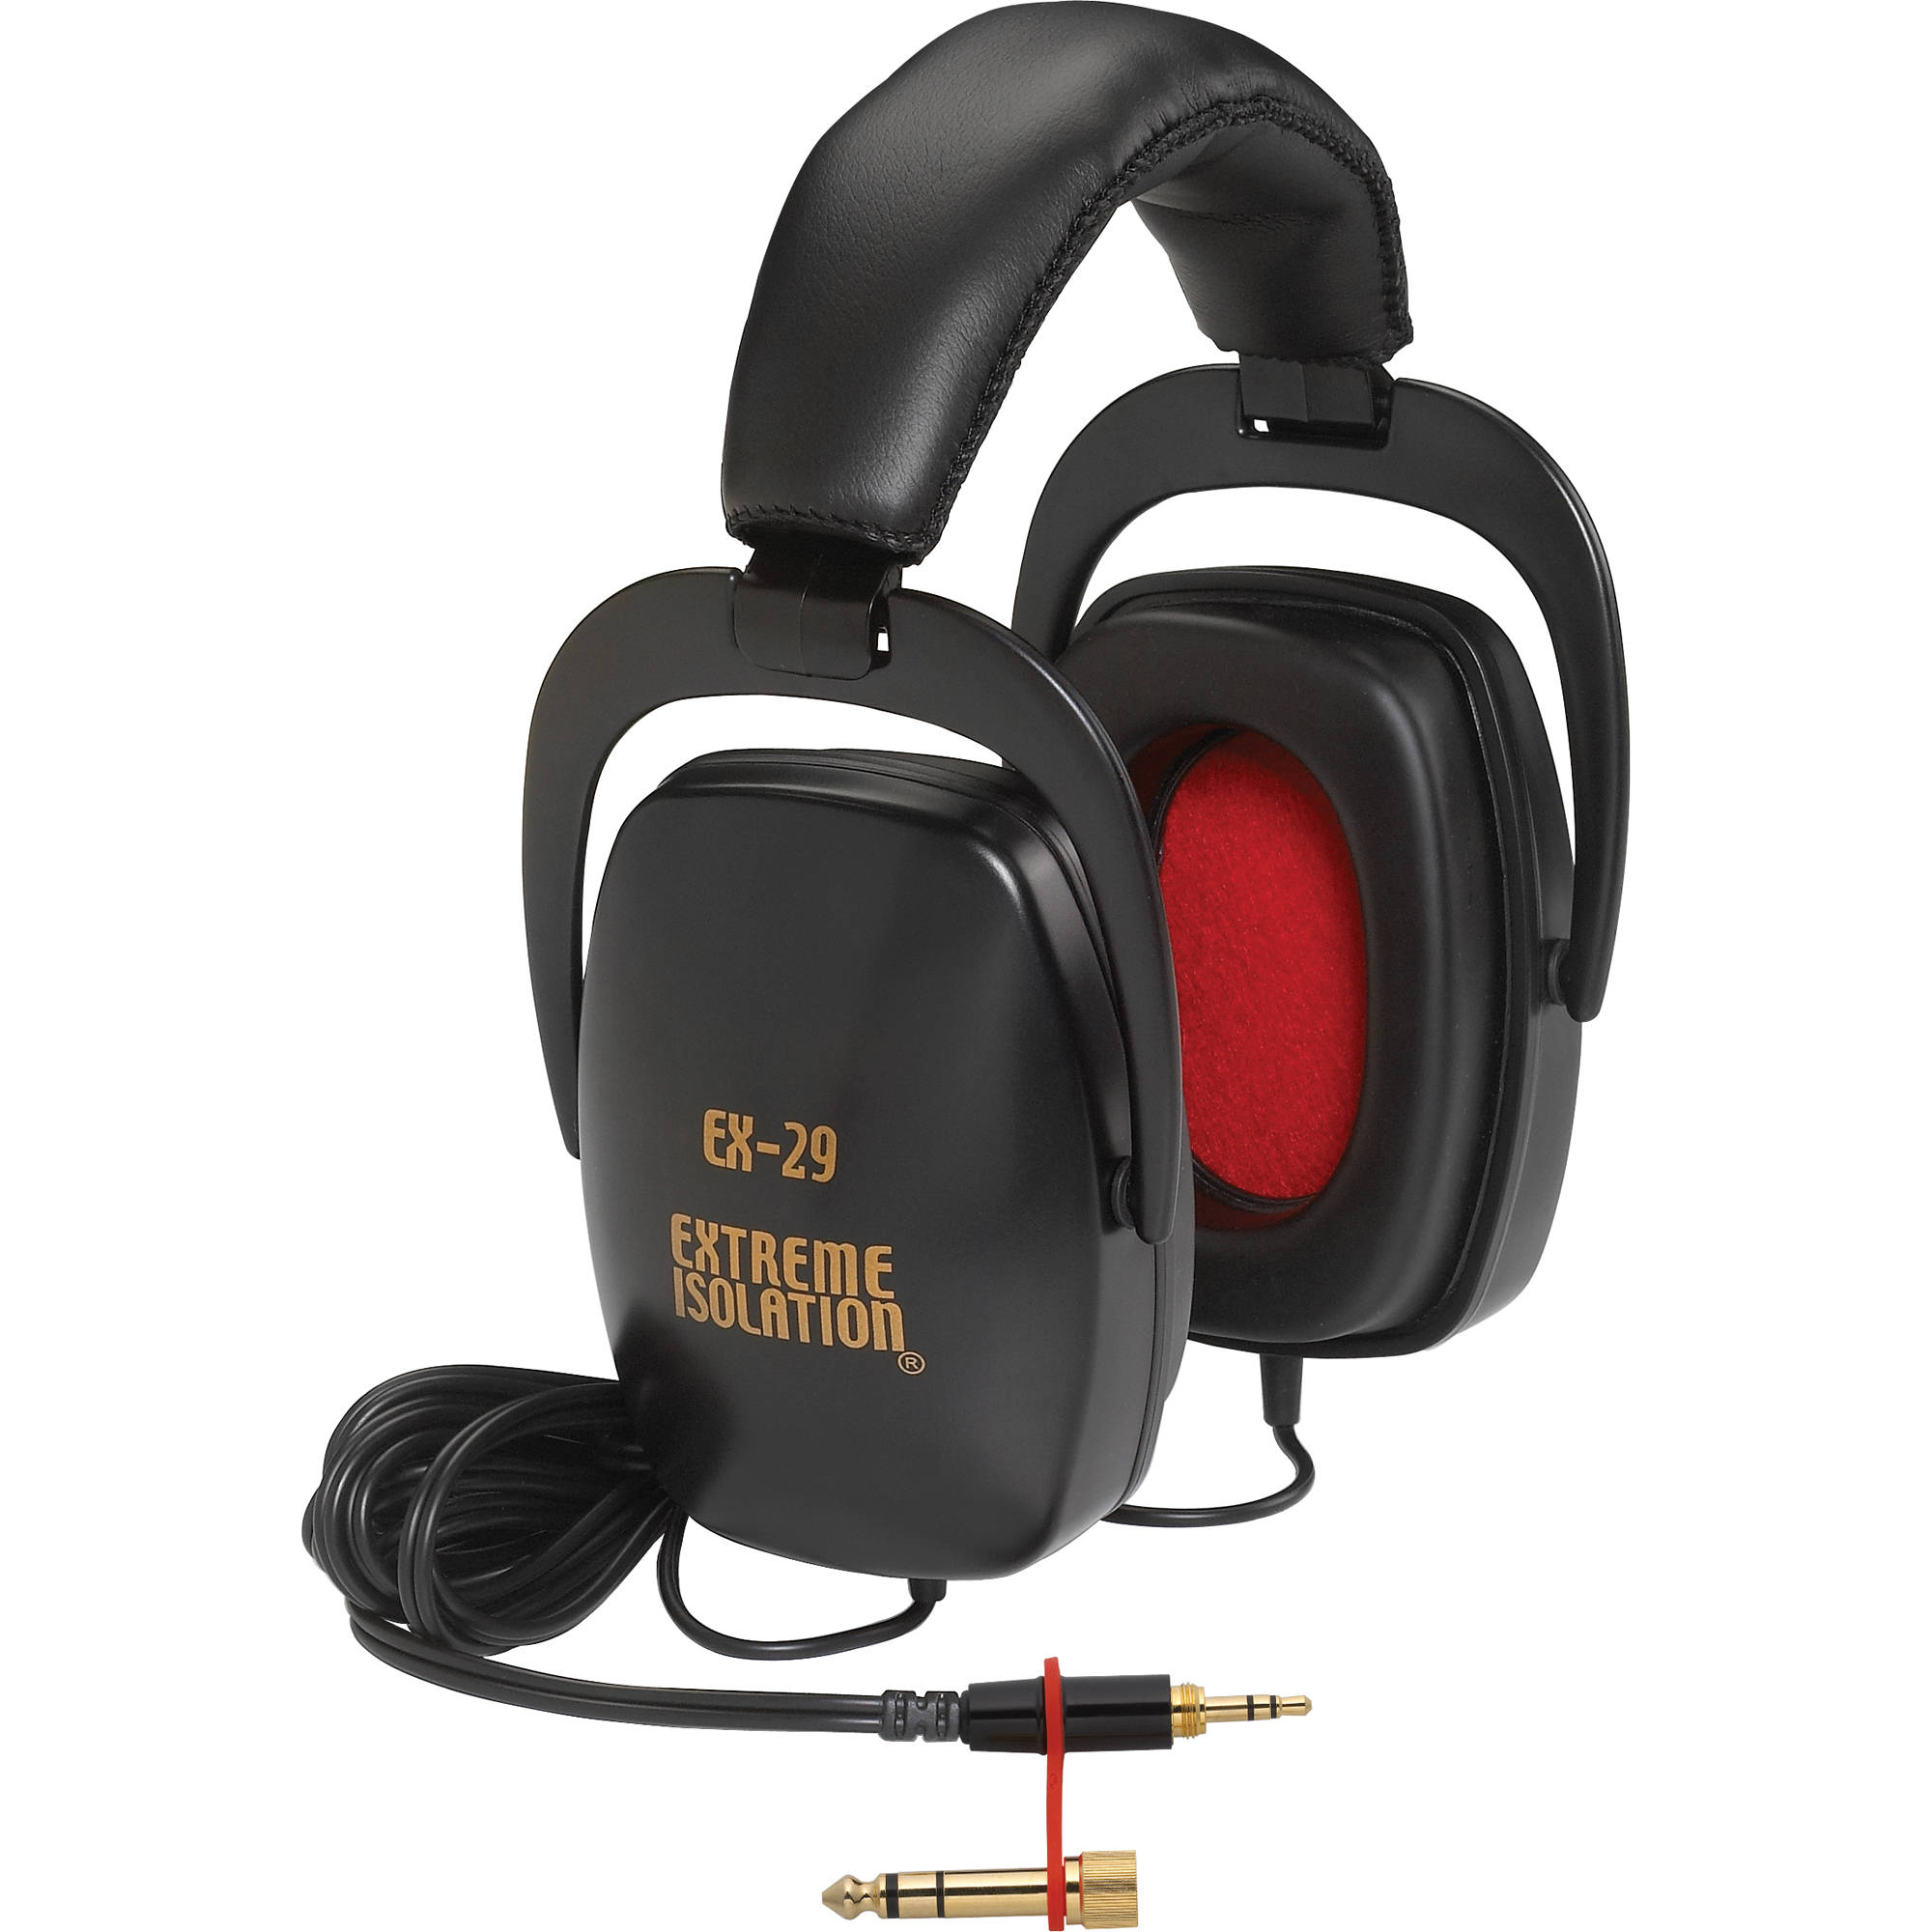 direct sound ex 29 extreme isolation stereo headphones ex 29 b h